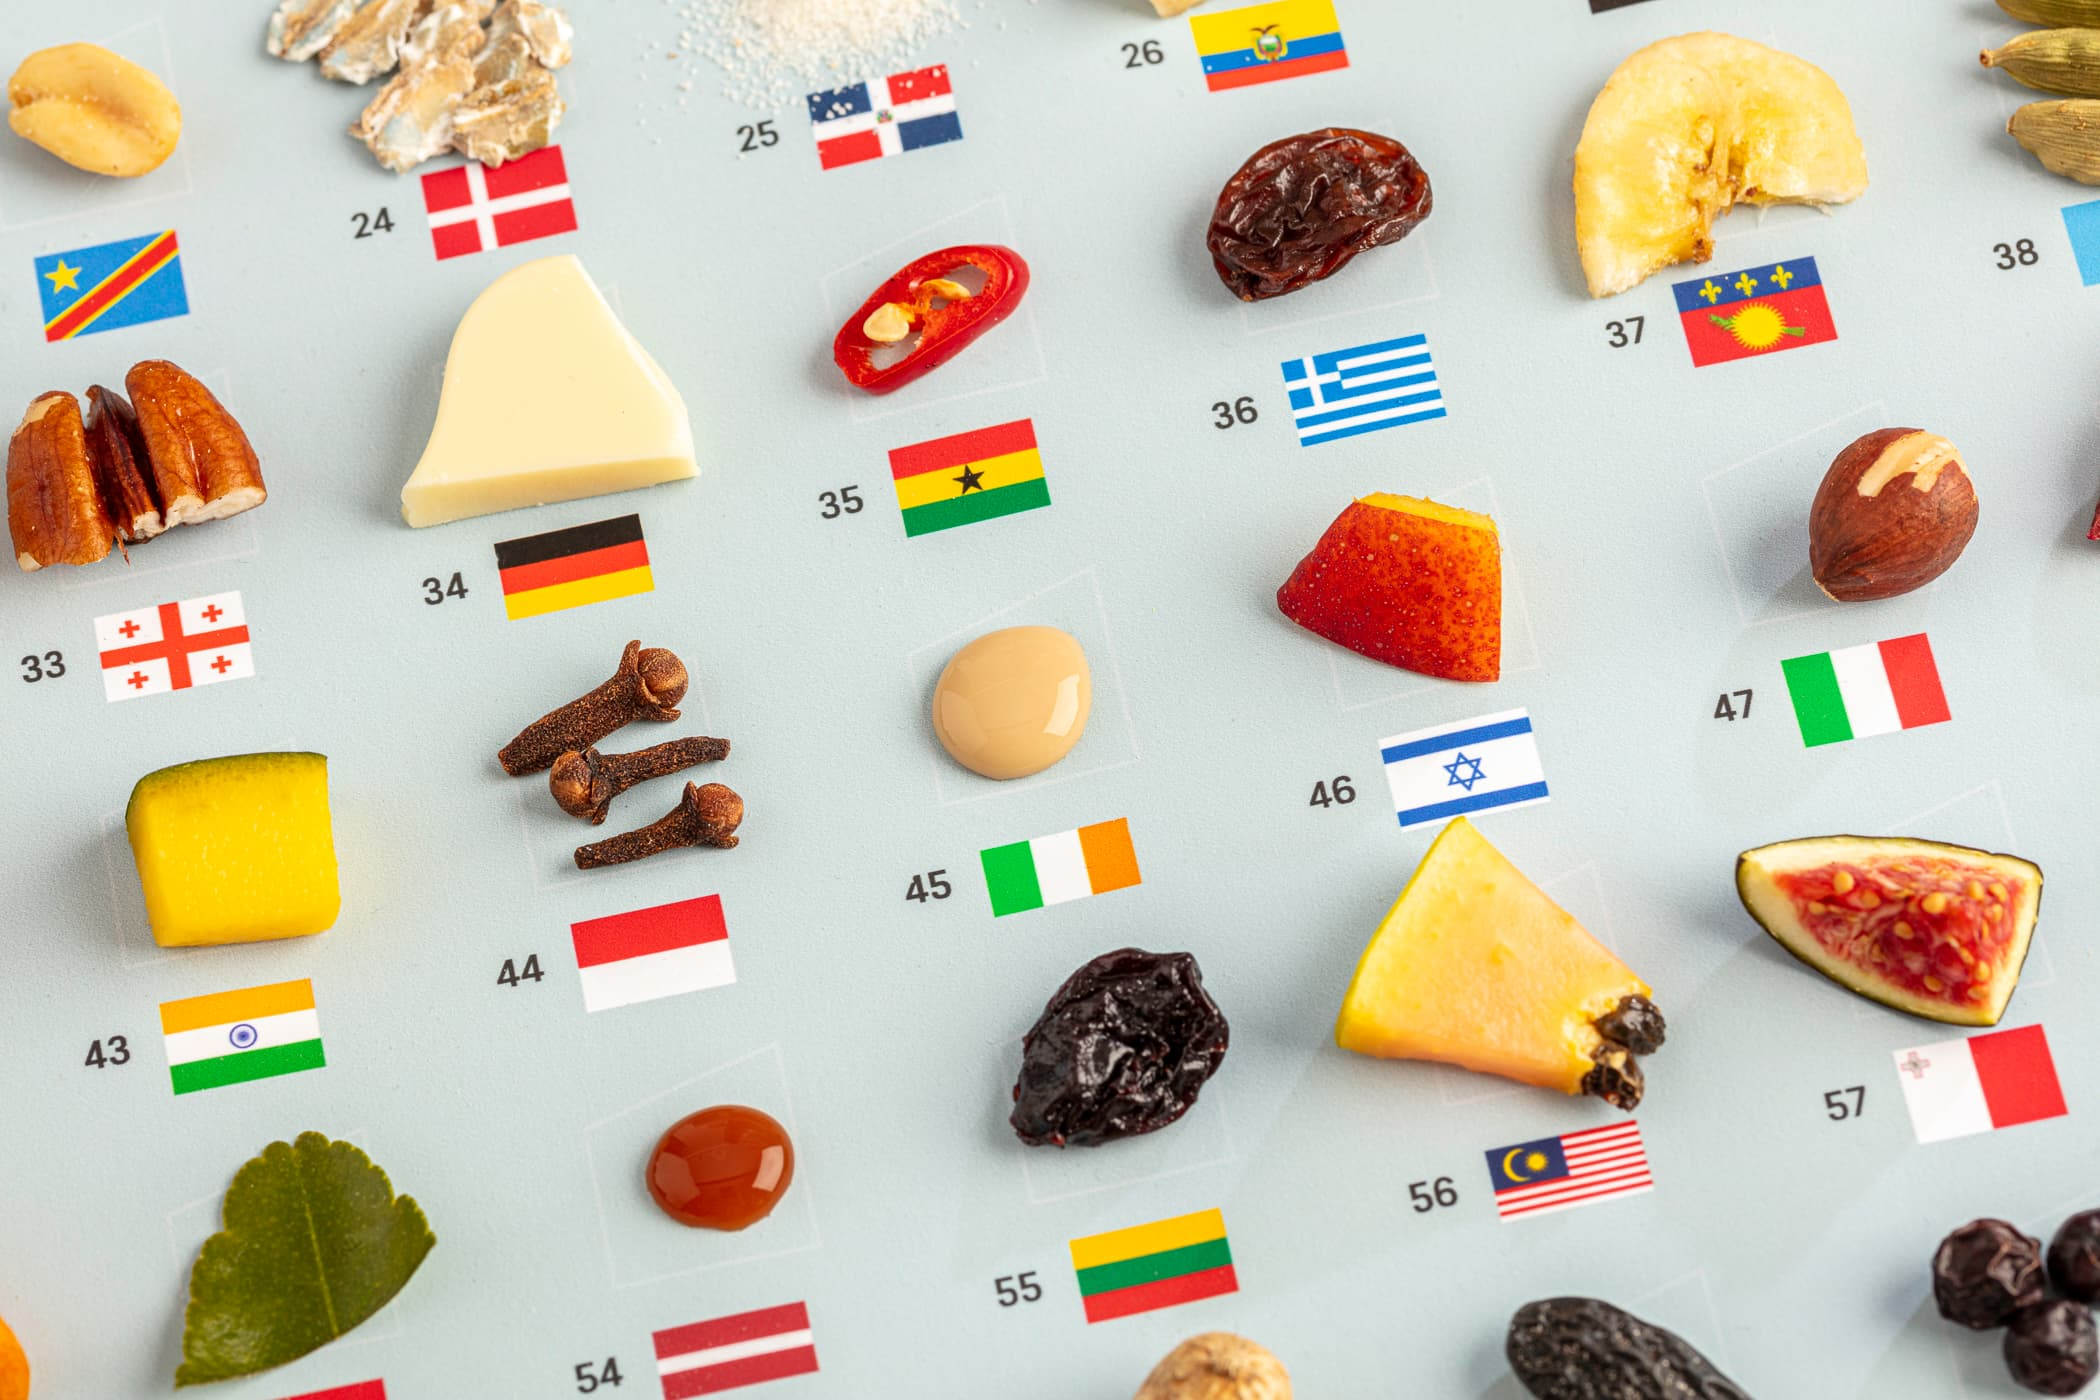 Grid of ingredients layed out with the country flag of origin labelled beneath the ingredient